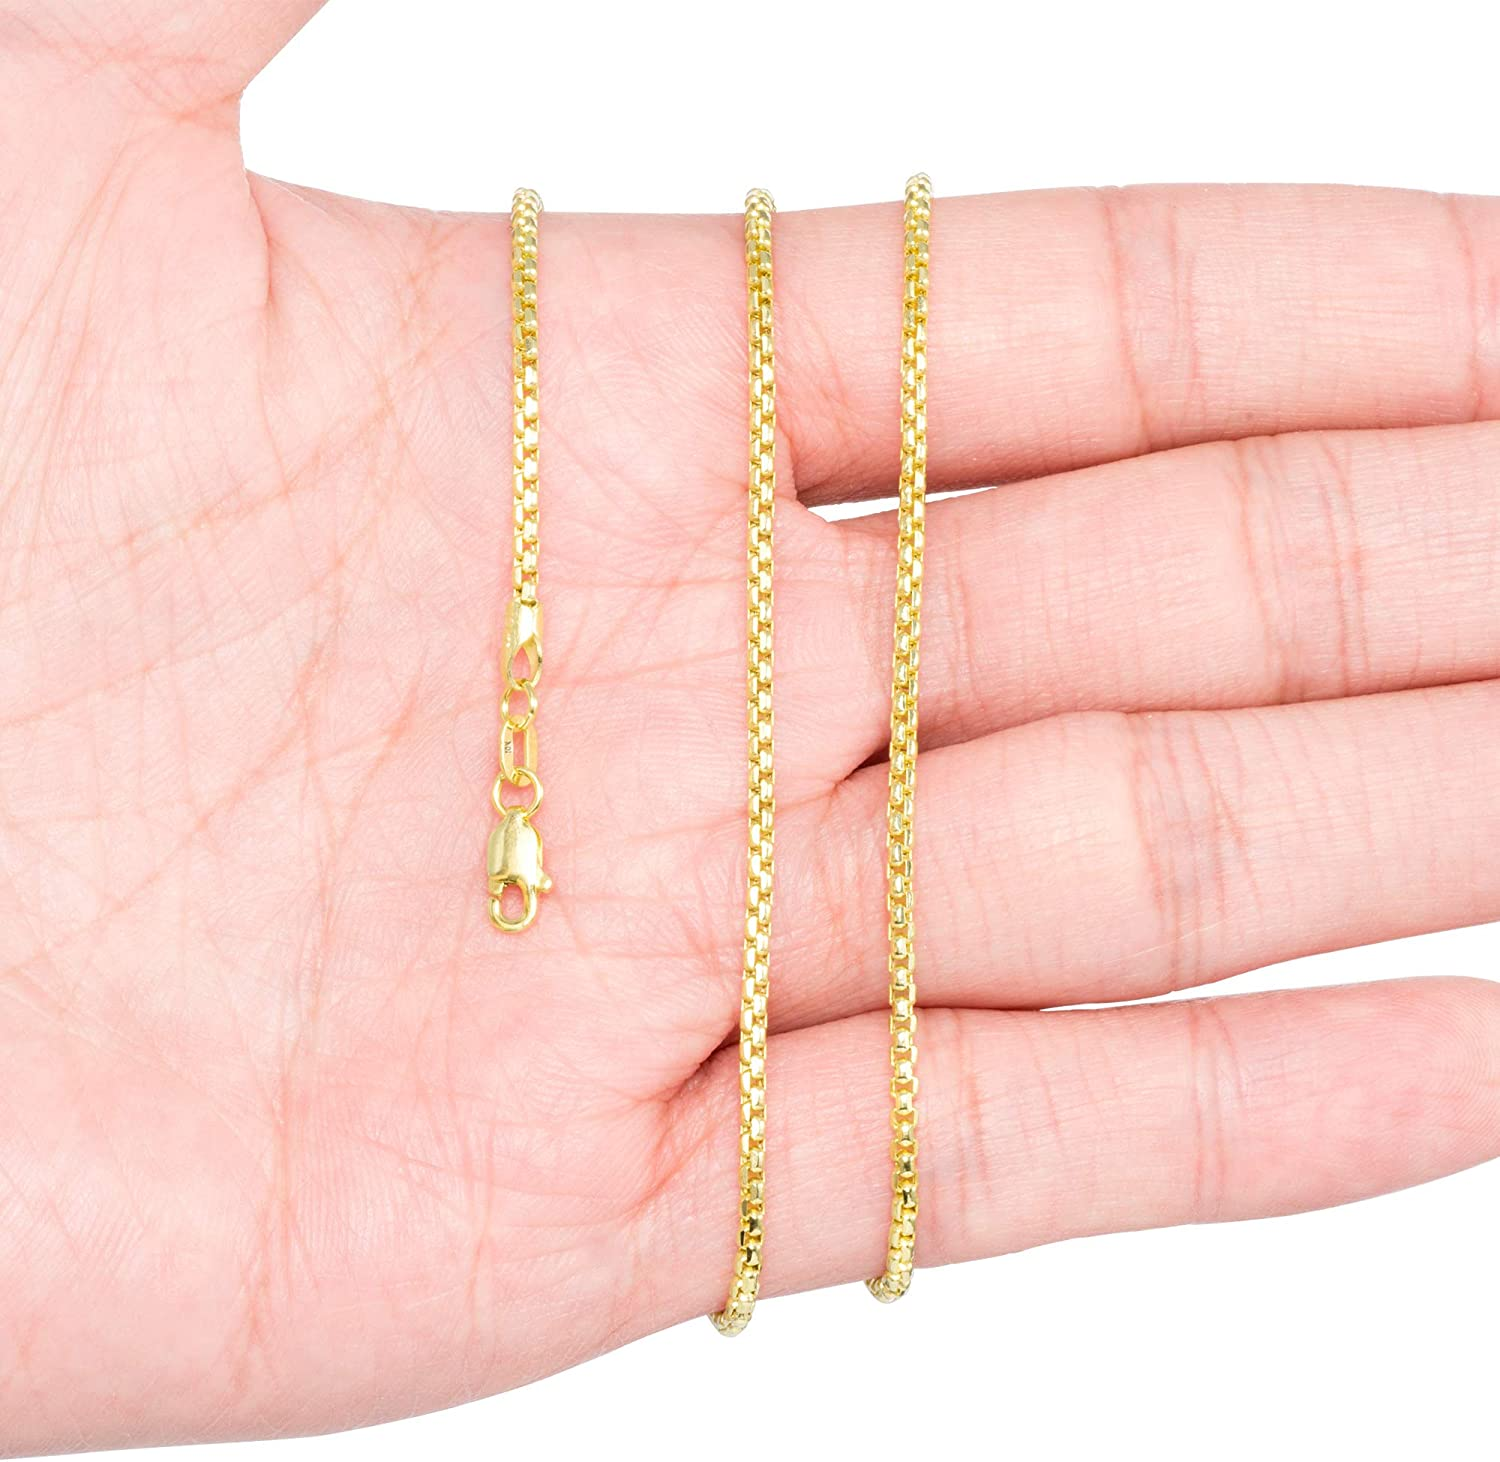 Nuragold 10k Yellow Gold 2mm Round Box Chain Venetian Link Pendant Necklace, Mens Womens Lobster Lock 16